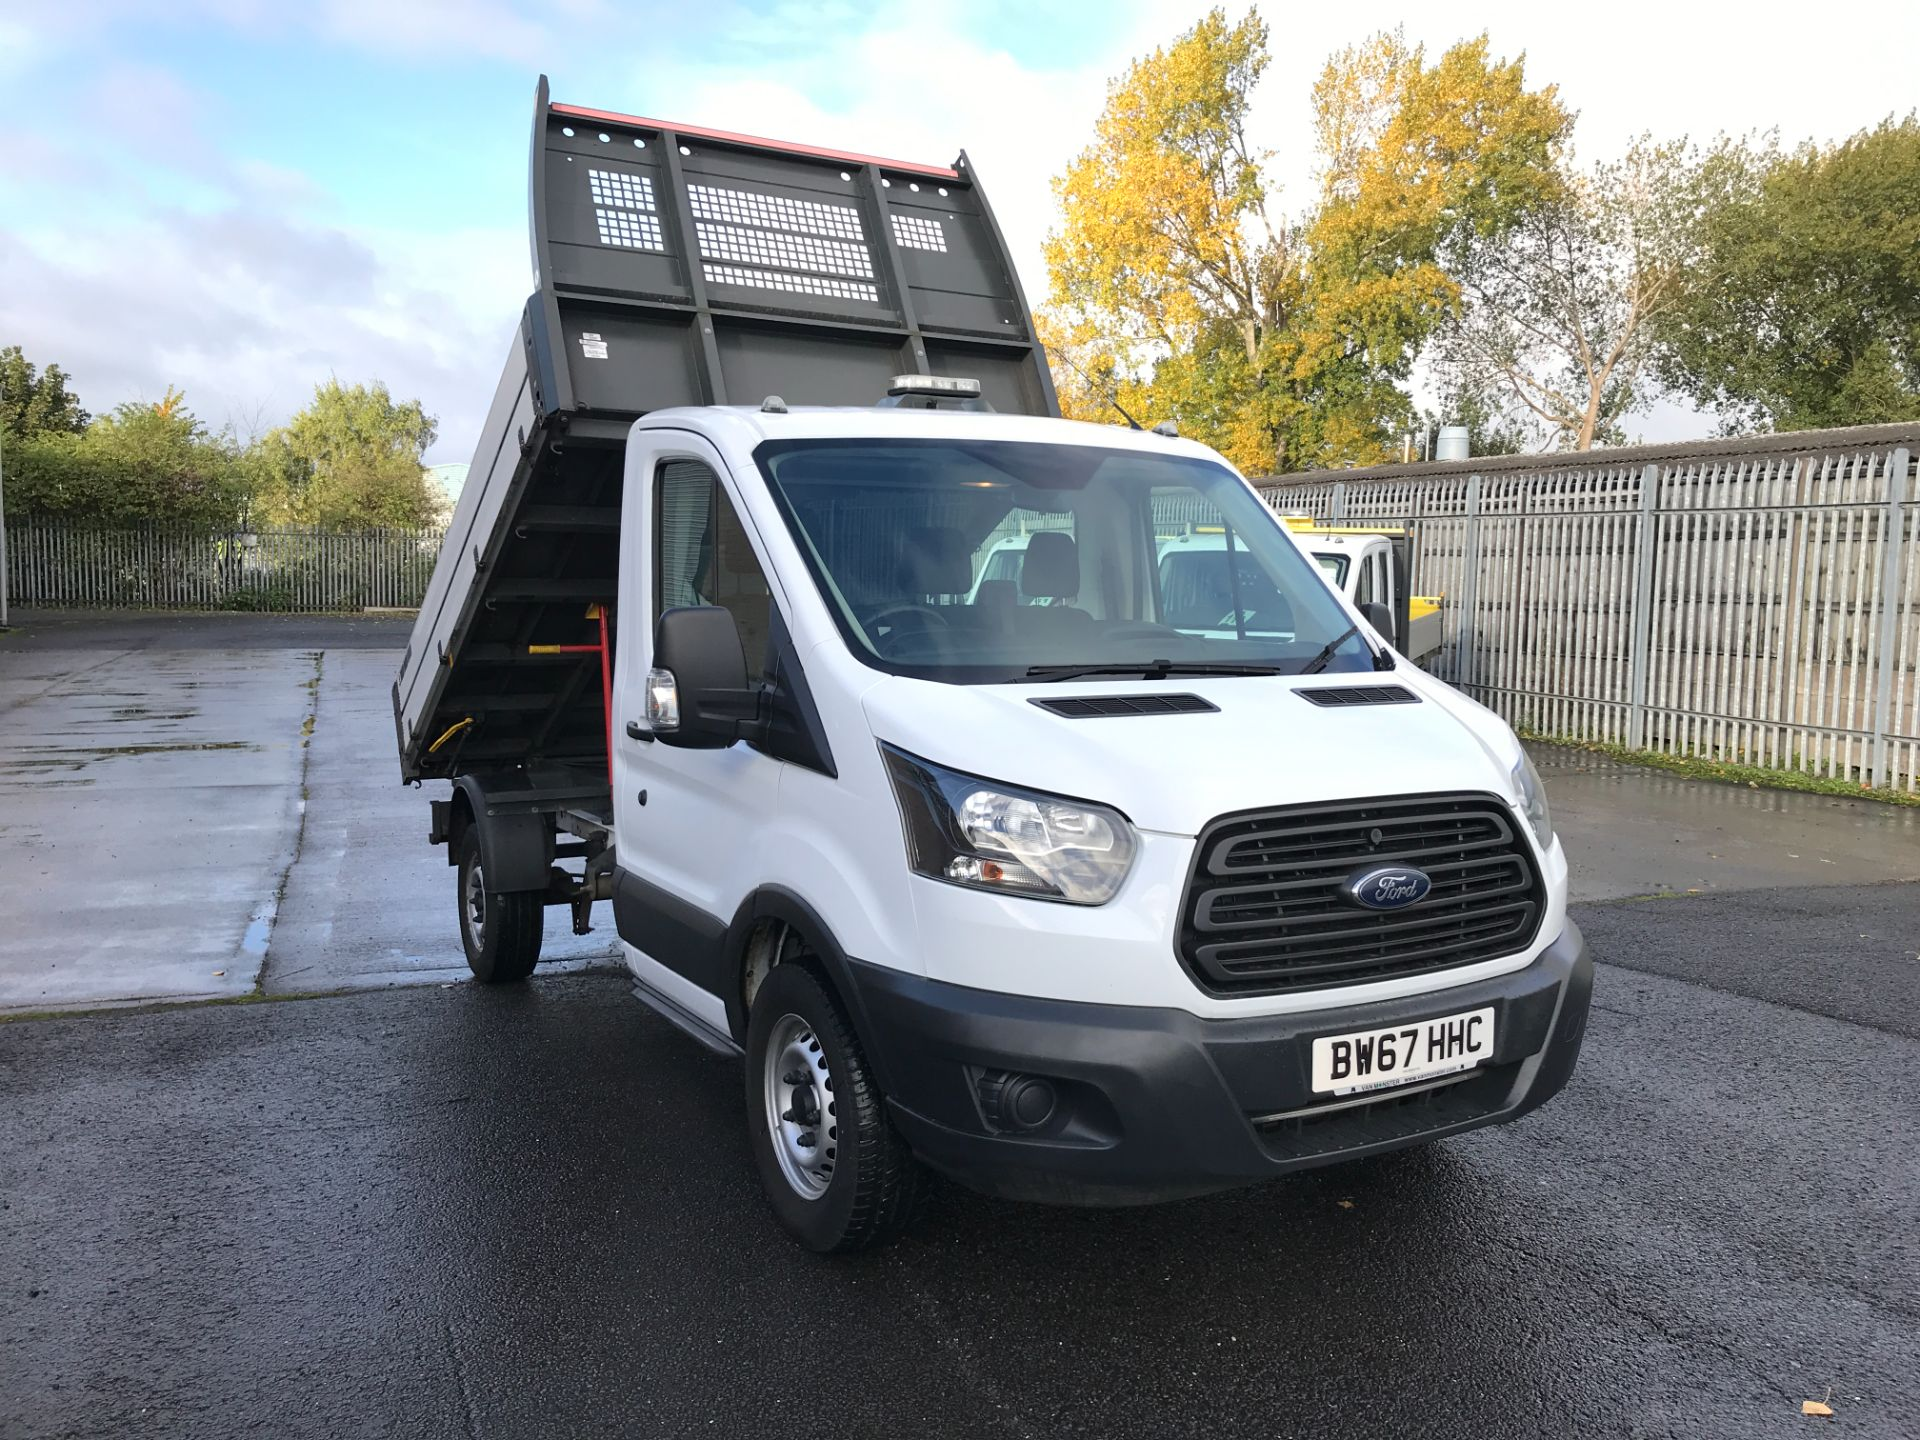 2018 Ford Transit T350 SINGLE CAB TIPPER 130PS EURO 6 (BW67HHC)